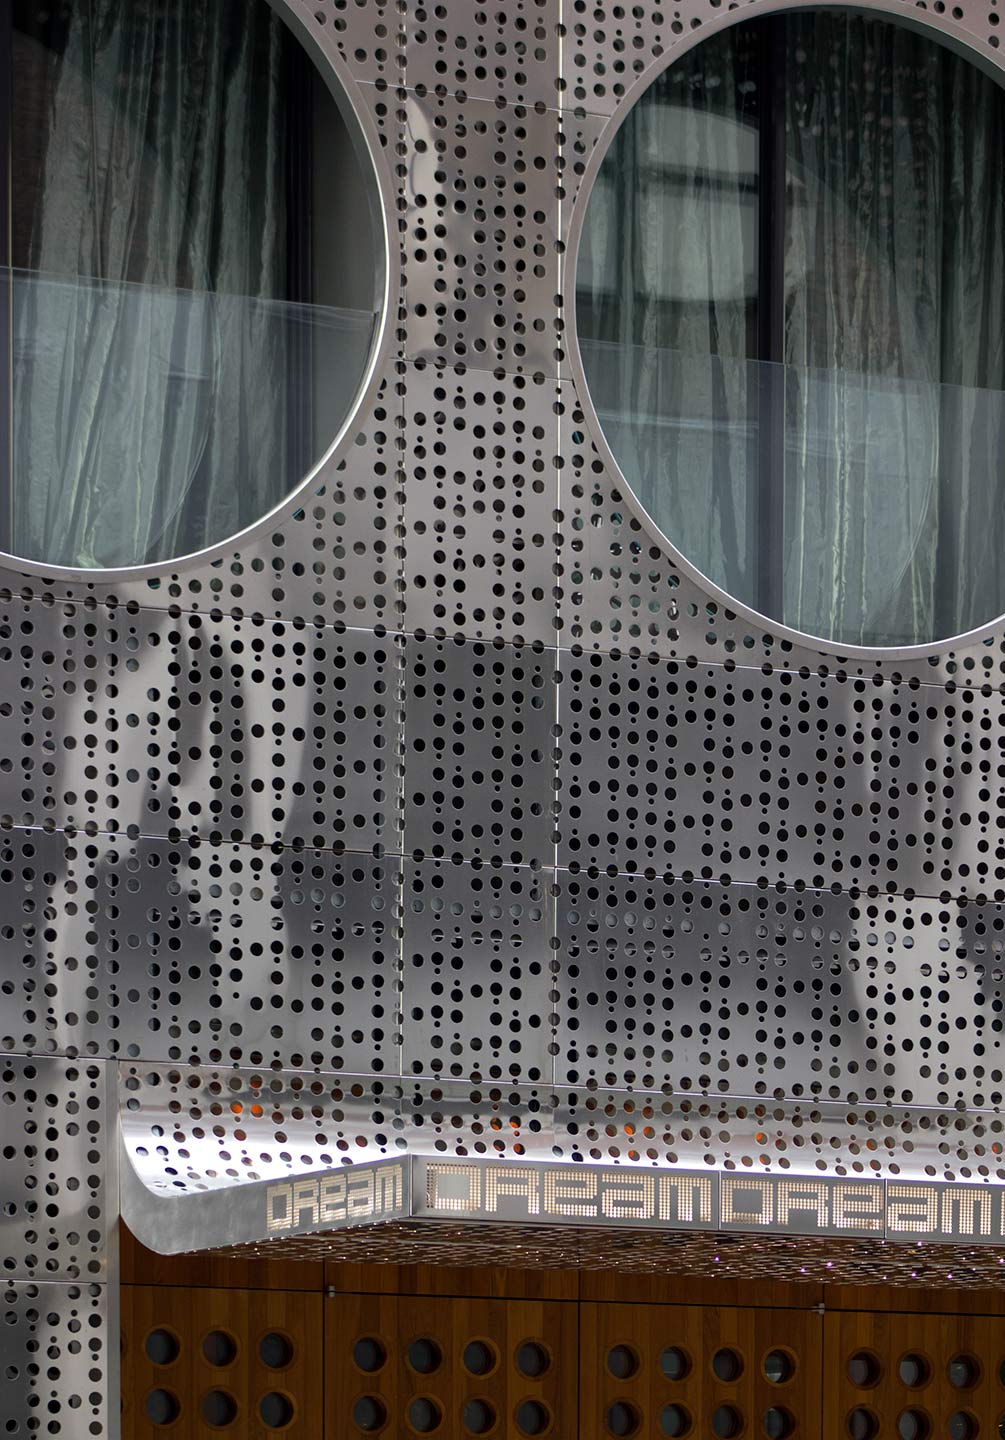 Detail of the metal panel system of the south side of Dream Downtown.